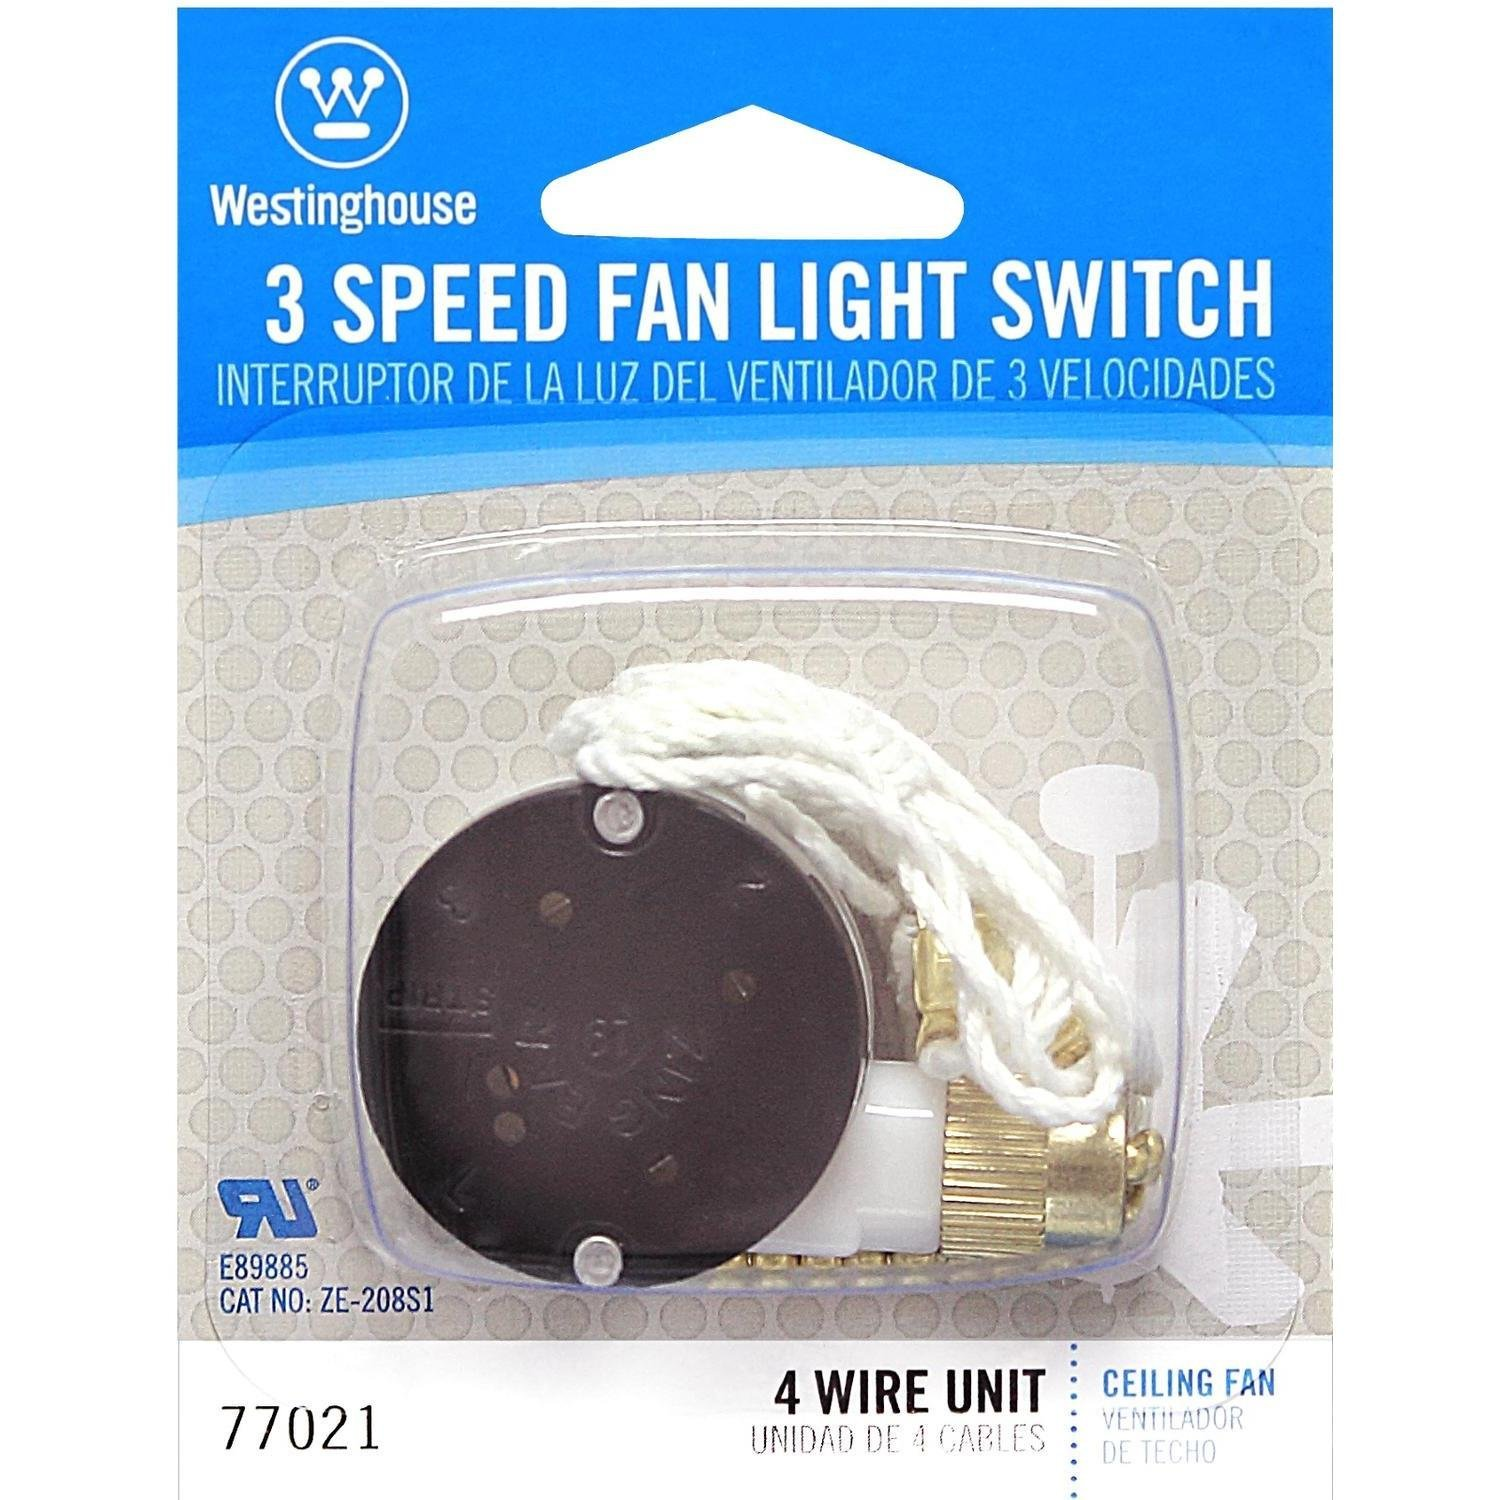 4 Wire Fan Pull Switch Wiring Great Installation Of Diagram Bathroom Cord Westinghouse 7702100 3 Speed Hunter Ceiling Parts Rh Amazon Com The For Motor